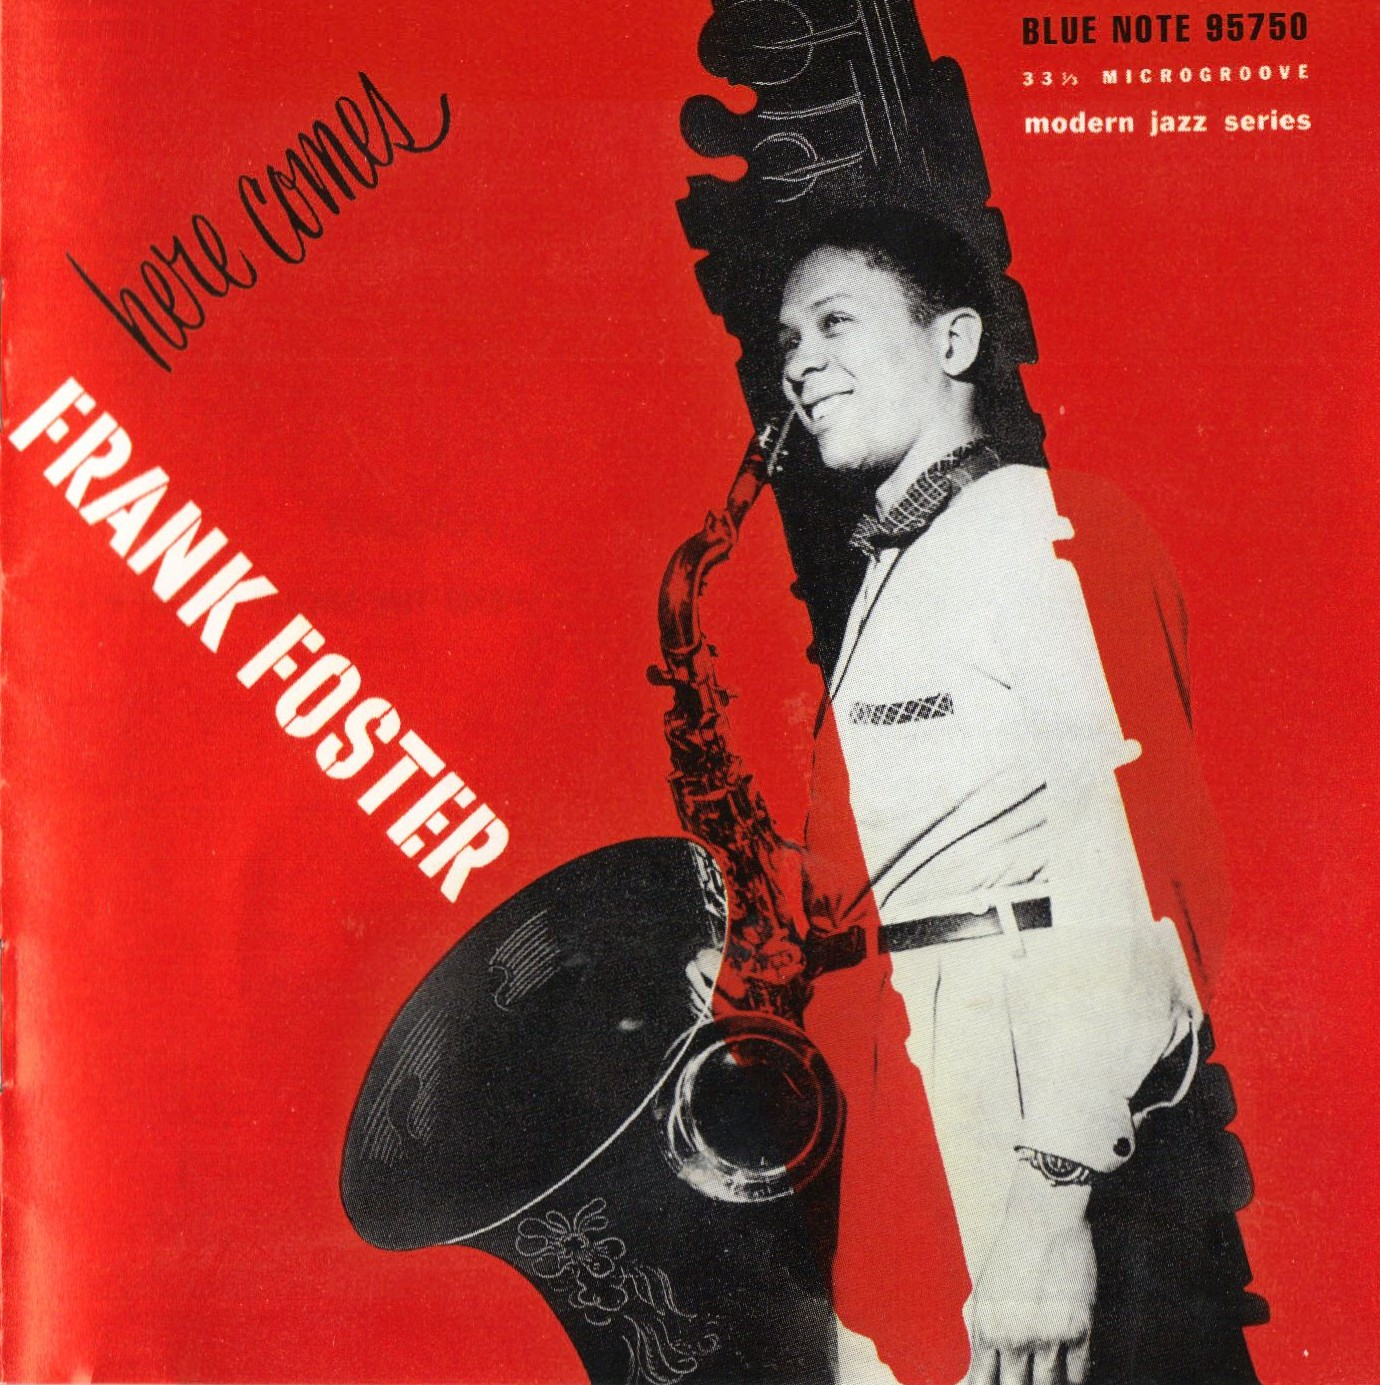 Coleman hawkins hawk flies high 20bit 2004 flac in addition Watch further Helen Merrill Very Rare Orig Emarcy Dg 1954 W Clifford Brown Jazz Record Mint furthermore Miles Davis The Musings Of Miles additionally Kenny Burrell Volume 2. on oscar pettiford album